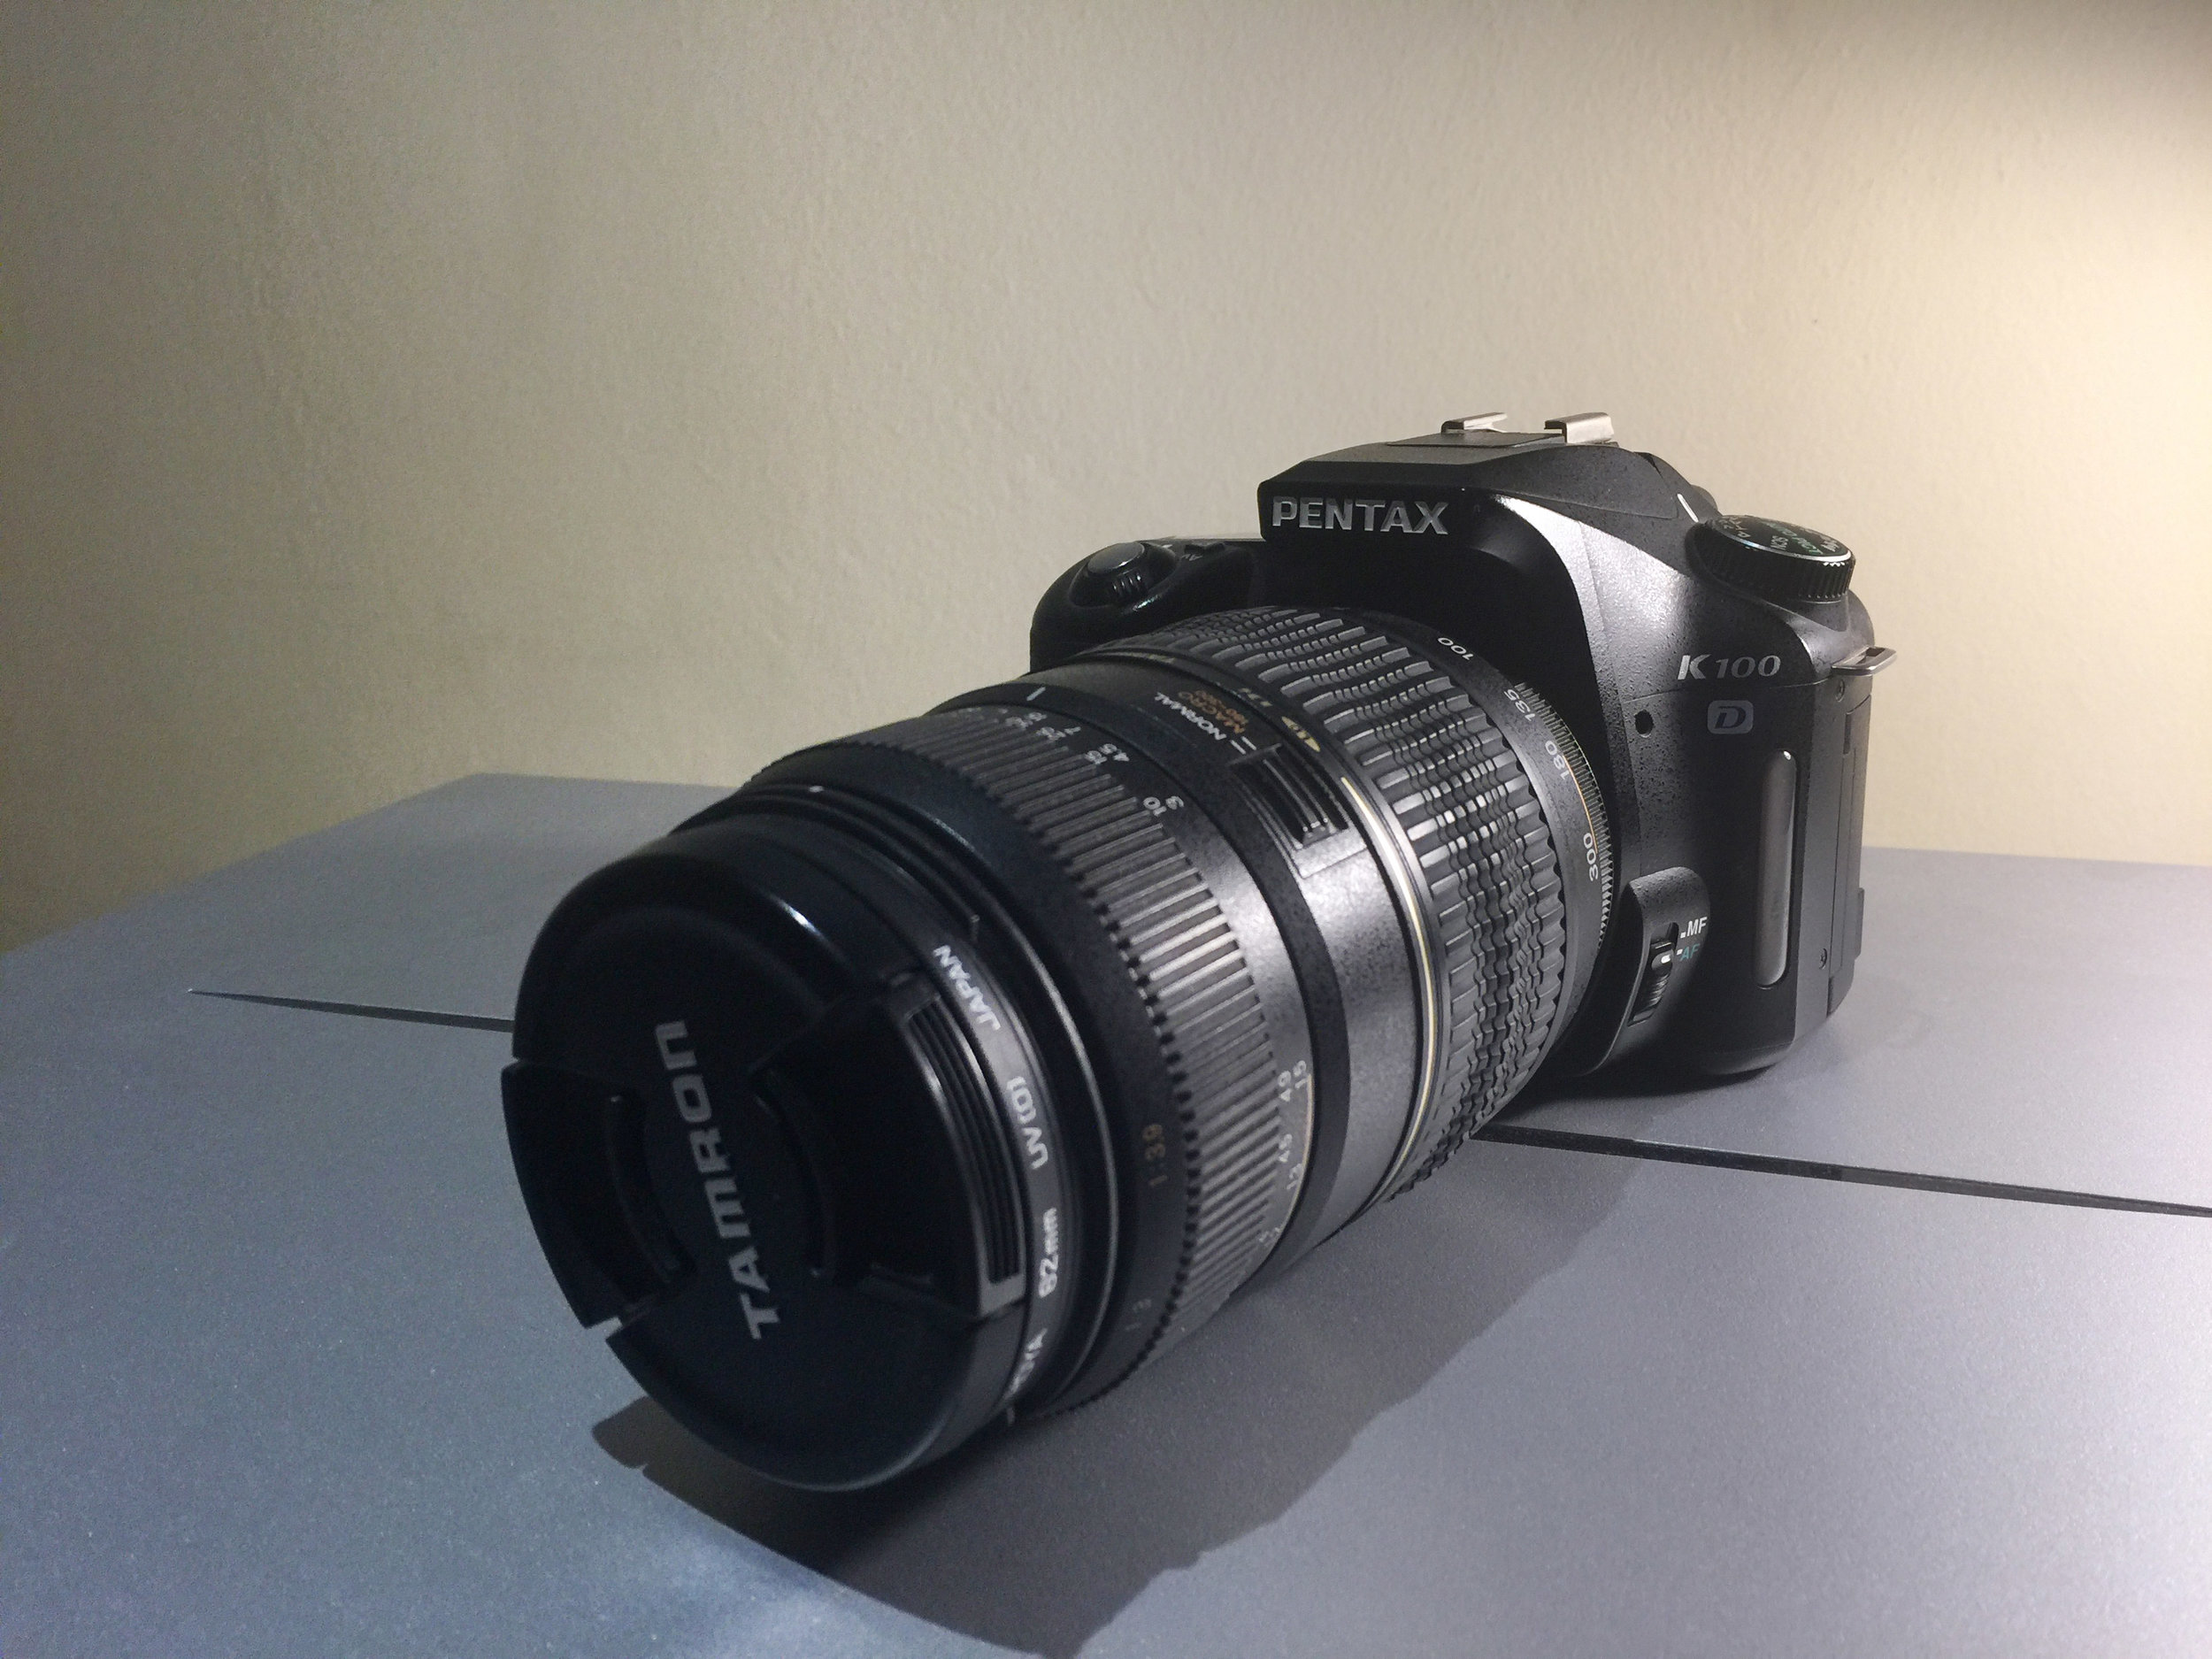 My venerable Pentax a great camera in 2006 and still great today - I use it wherever there is risk of theft or damage. This camera sells for R450 second-hand